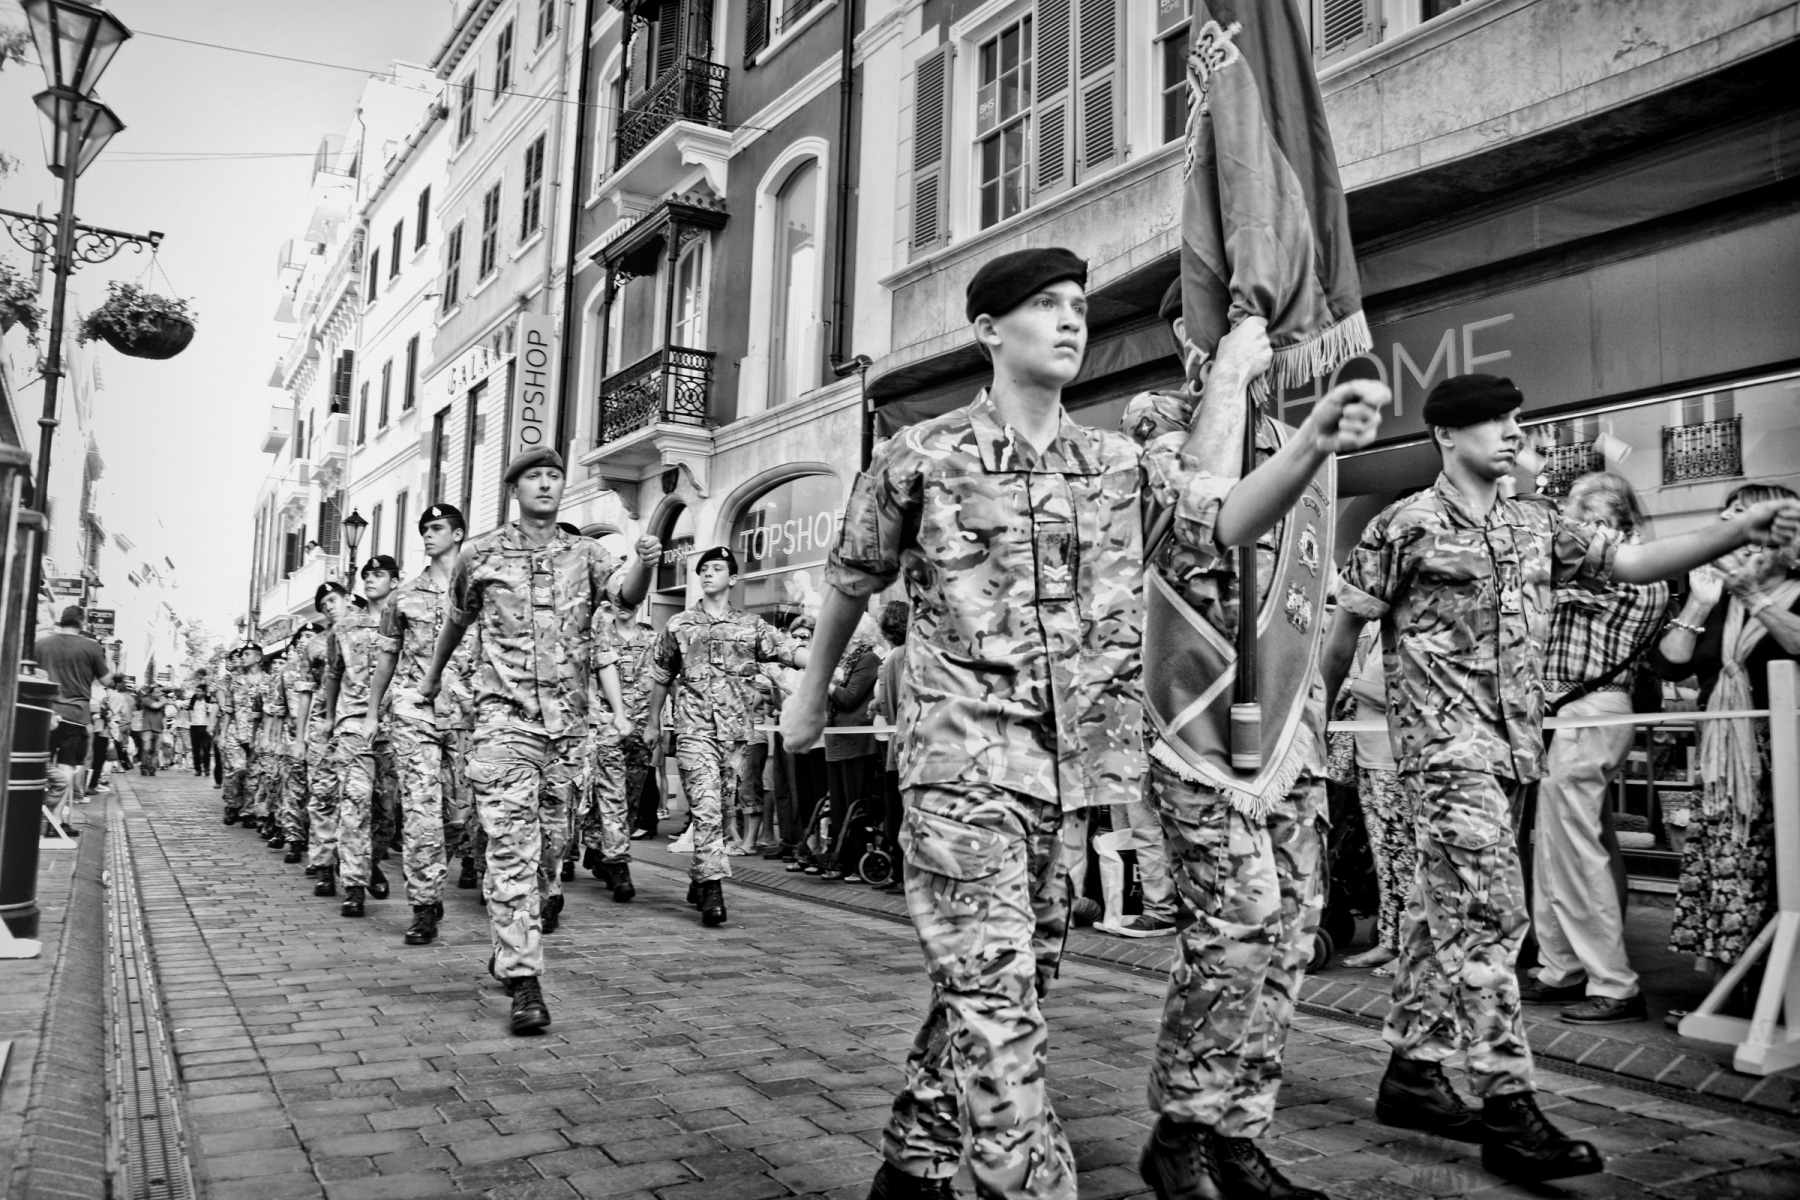 regiment-freedom-of-city-0114-bw_15253400557_o